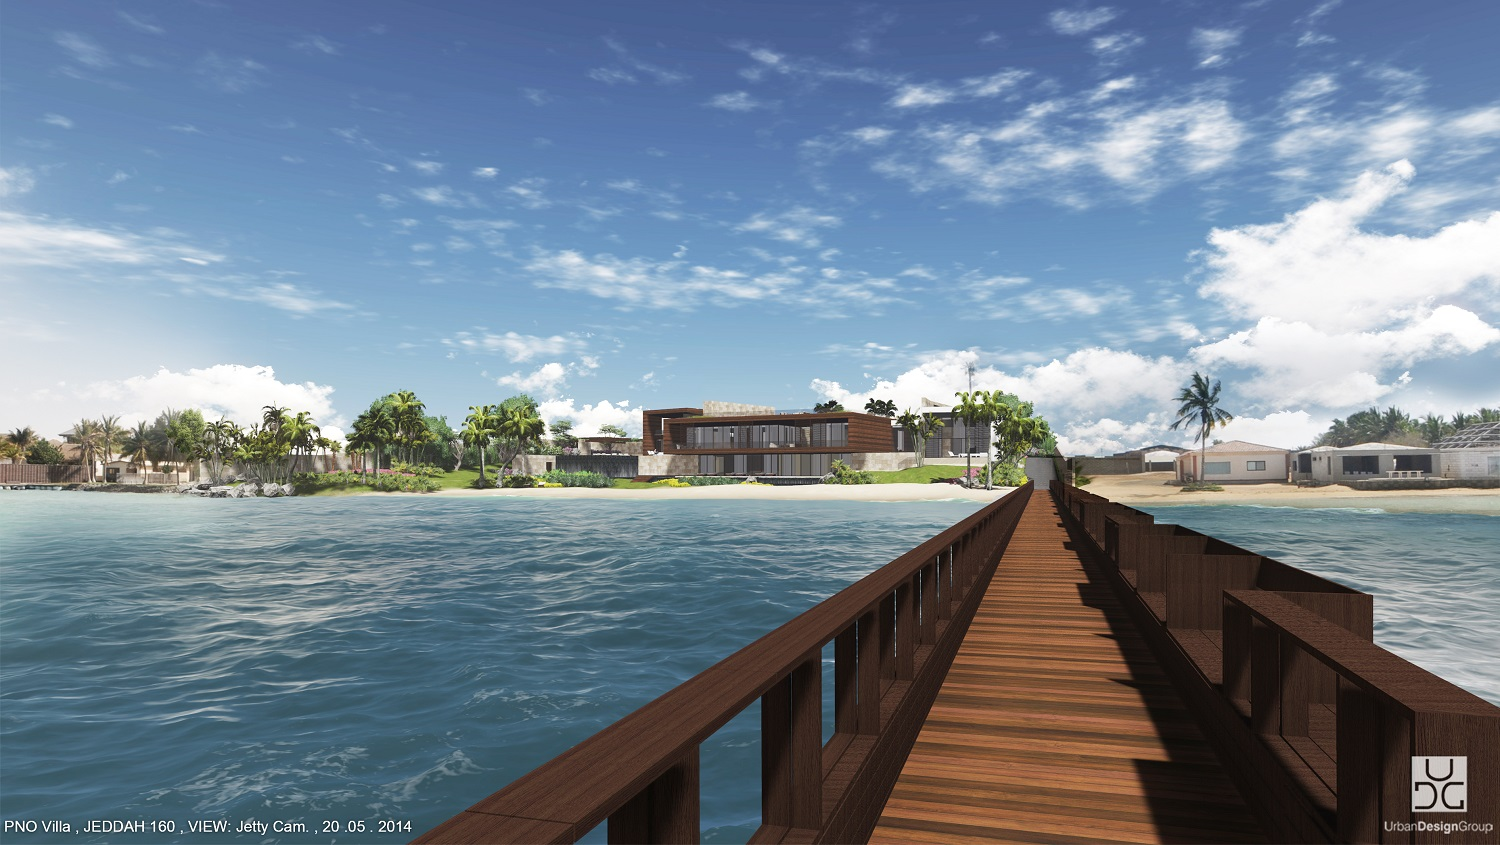 Villa view from the jetty UDG team}